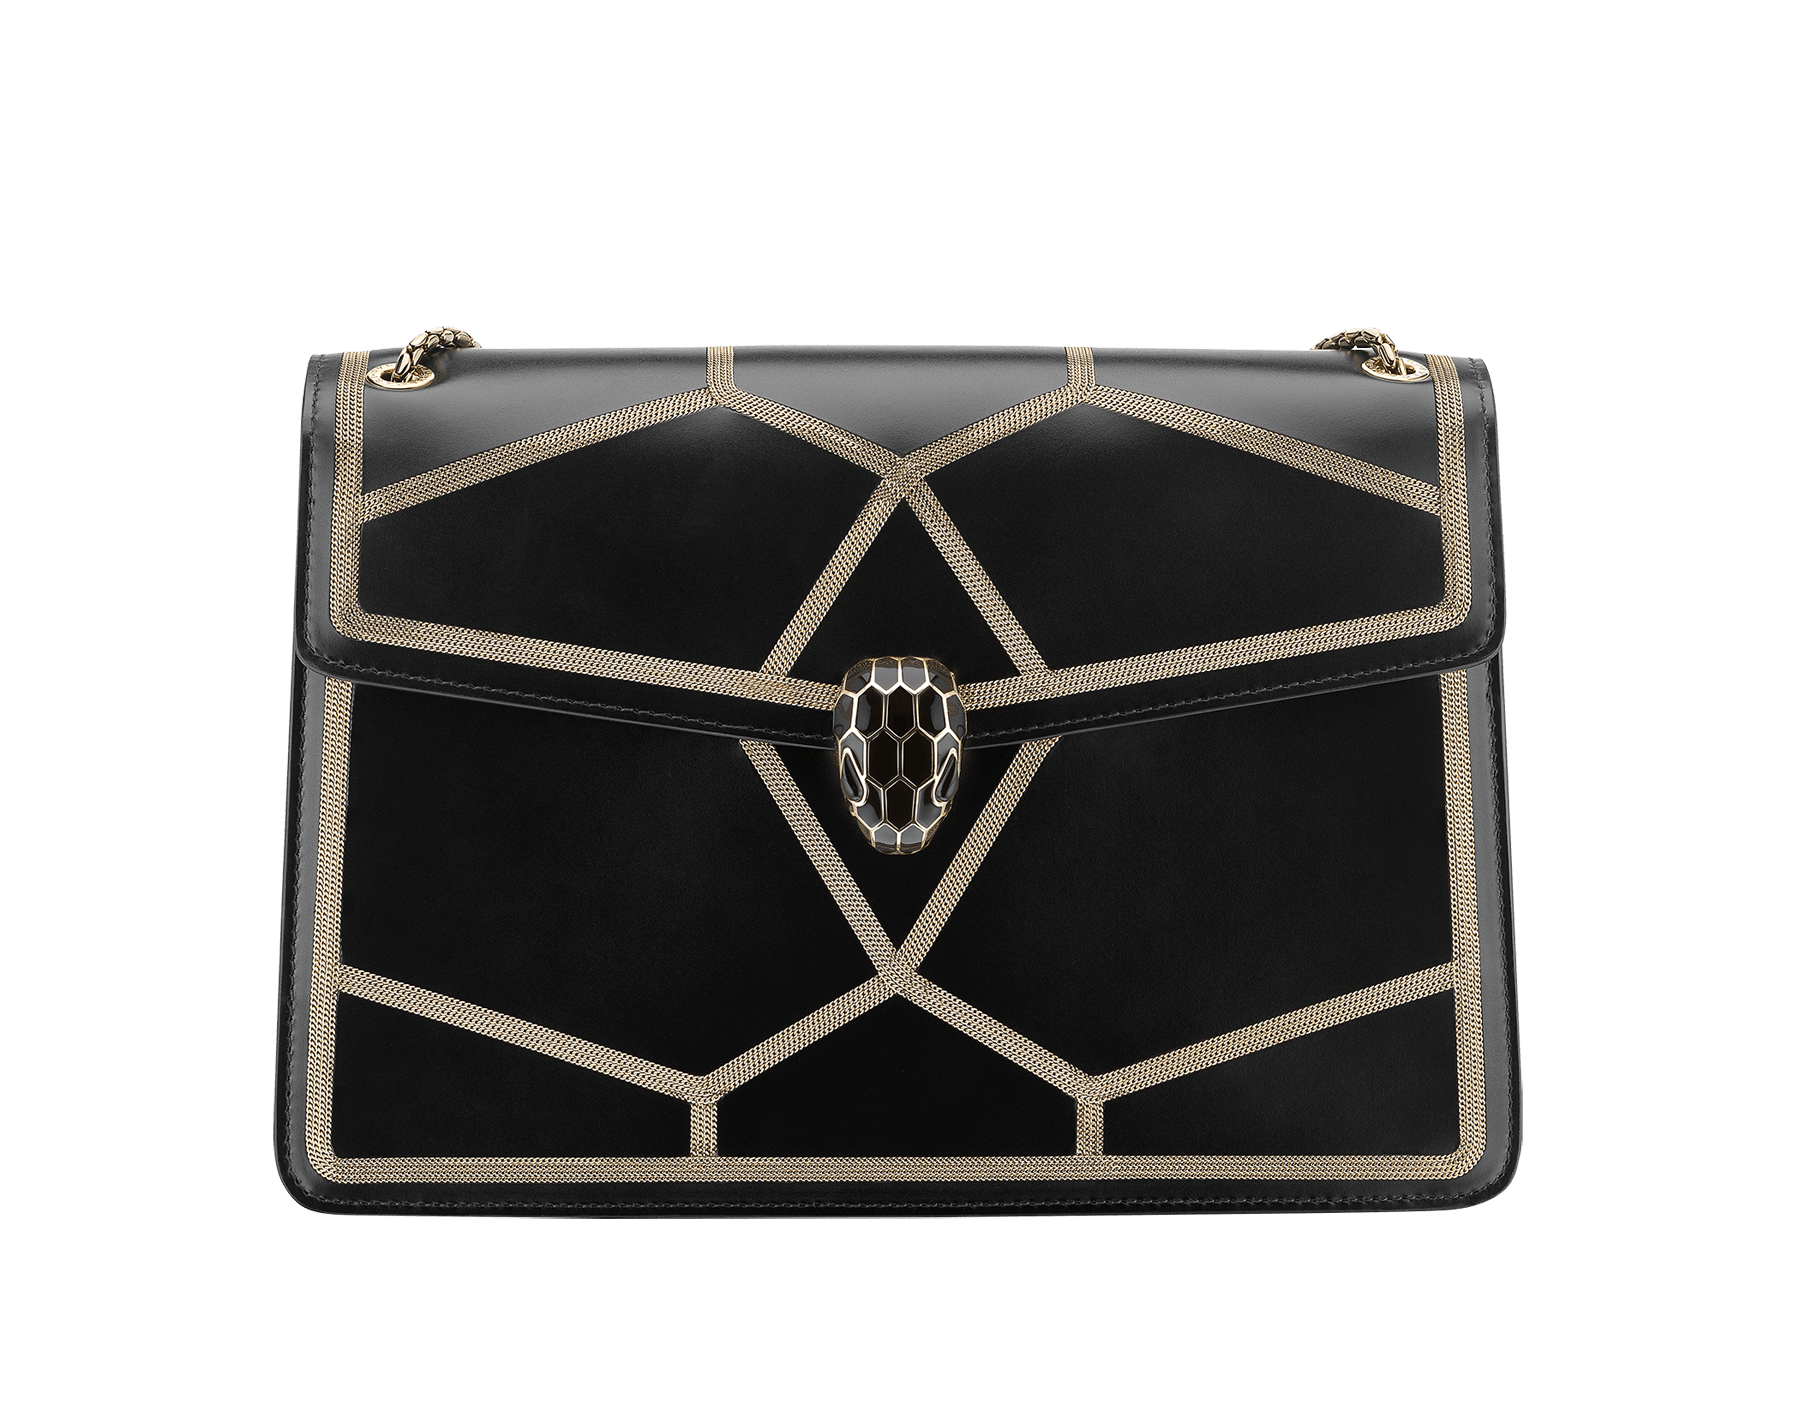 """Serpenti Forever"" shoulder bag in black calf leather and Million Chain frame body and black calf leather sides. Iconic snake head closure in light gold-plated brass enriched with black enamel and black onyx eyes. 521-GCP image 1"